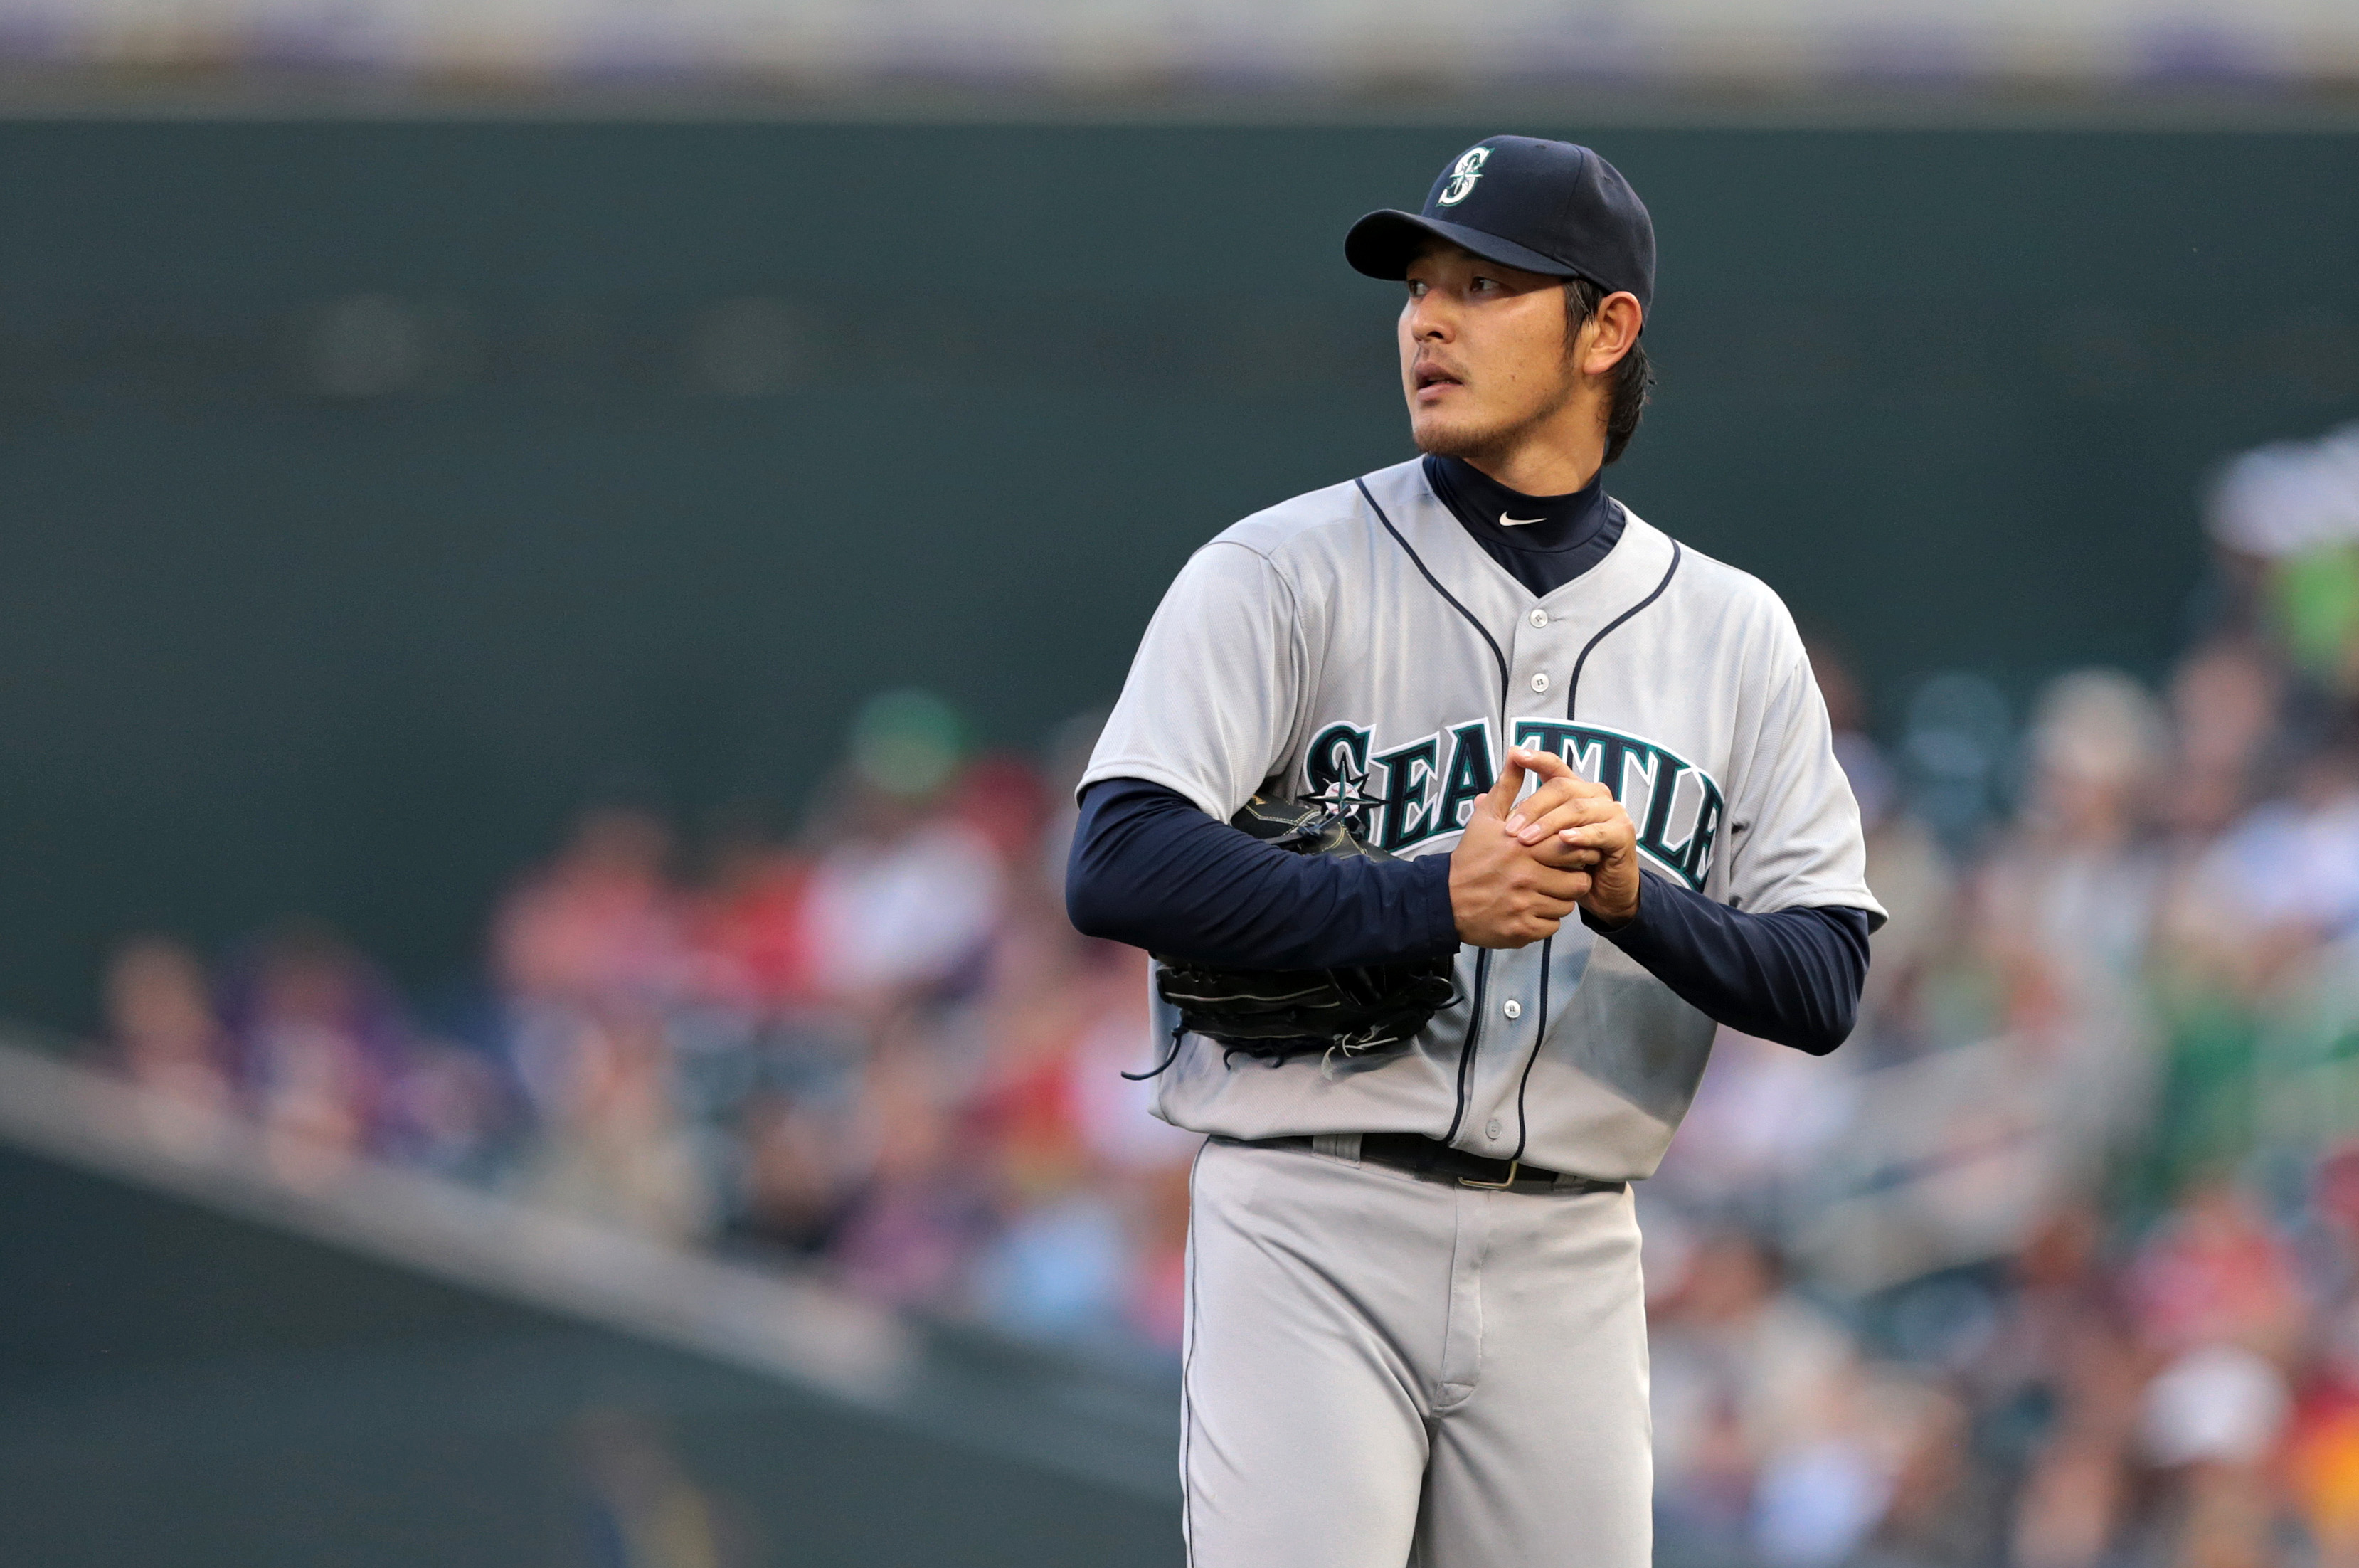 Hisashi Iwakuma belongs in the discussion of MLB's elite arms. (USAT)